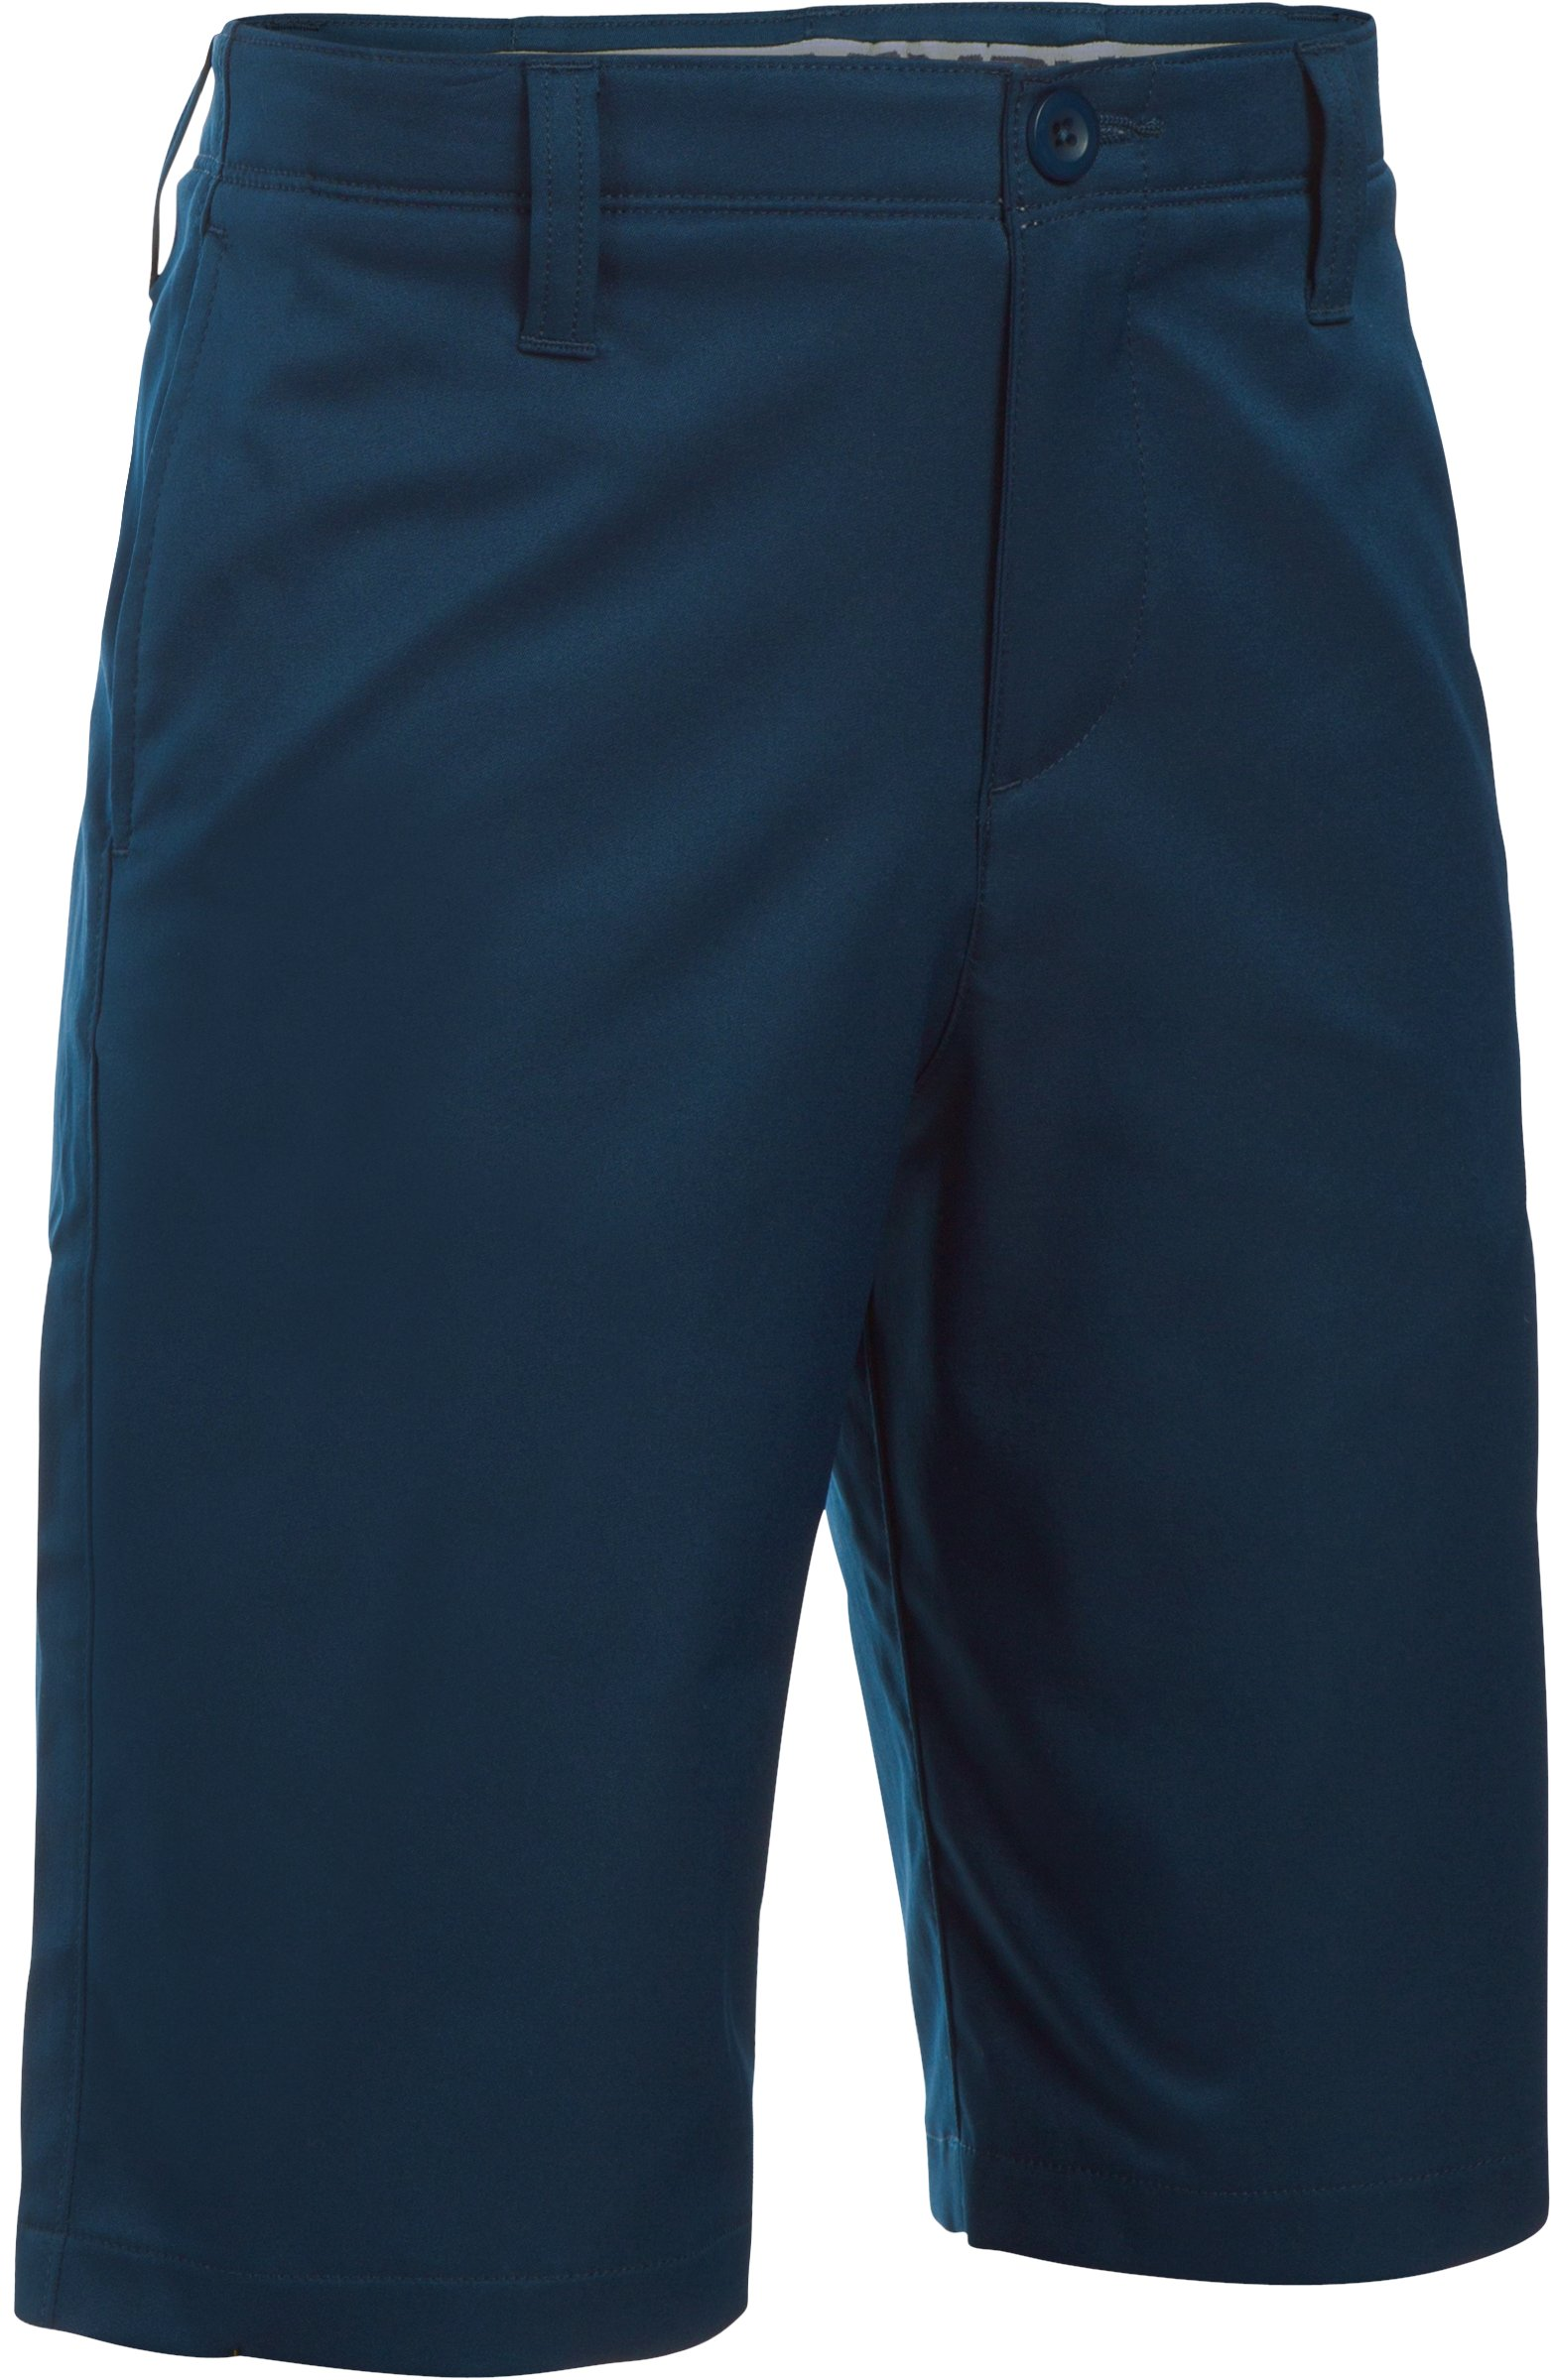 Boys' UA Match Play Shorts, Academy